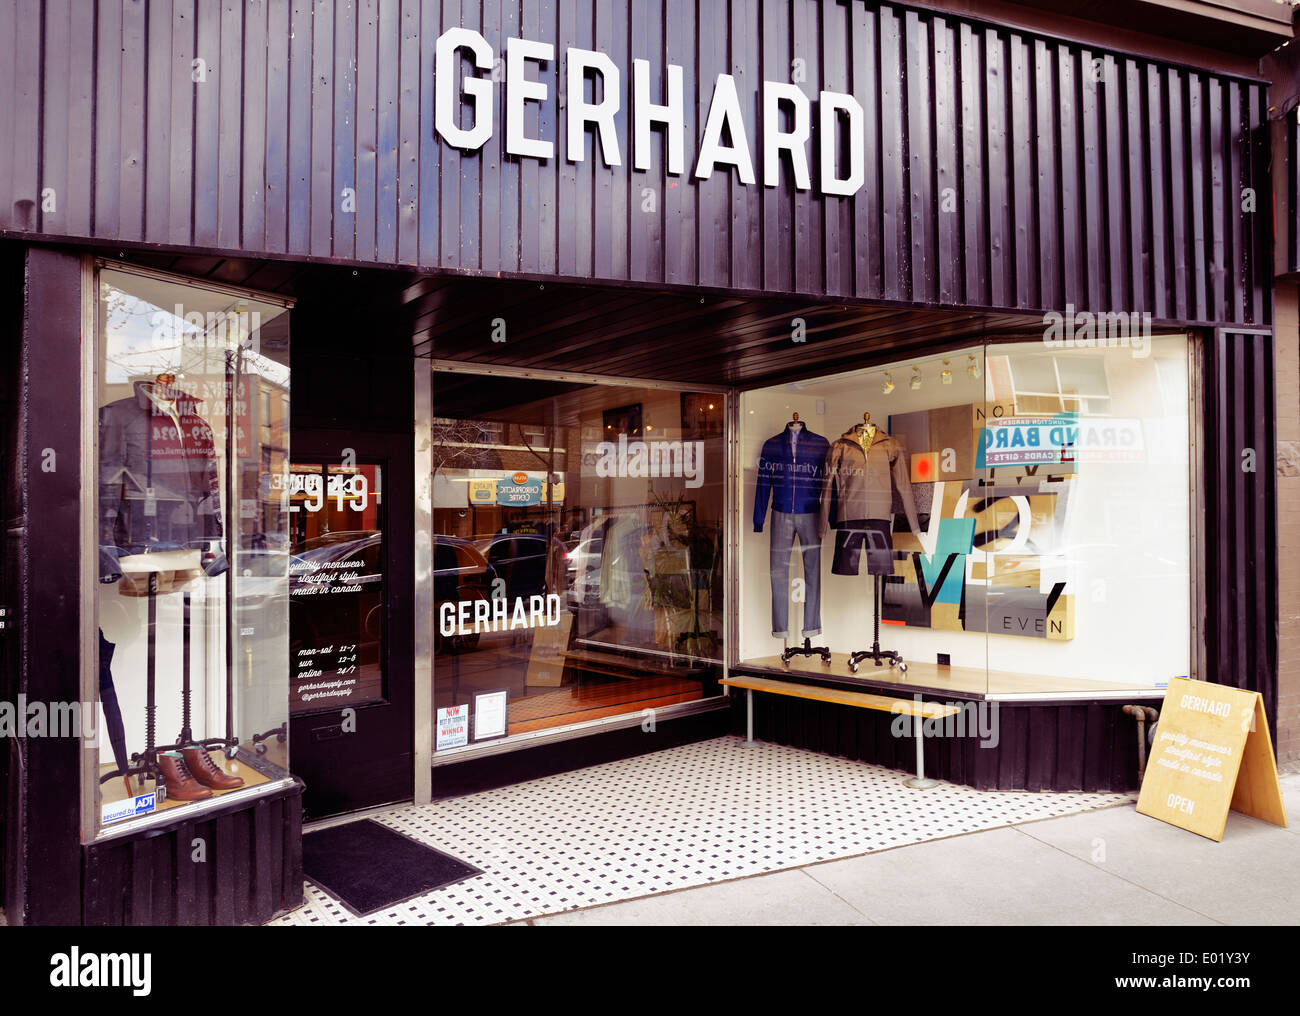 Gerhard Supply menswear clothing store at the Junction neighbourhood in Toronto, Canada - Stock Image